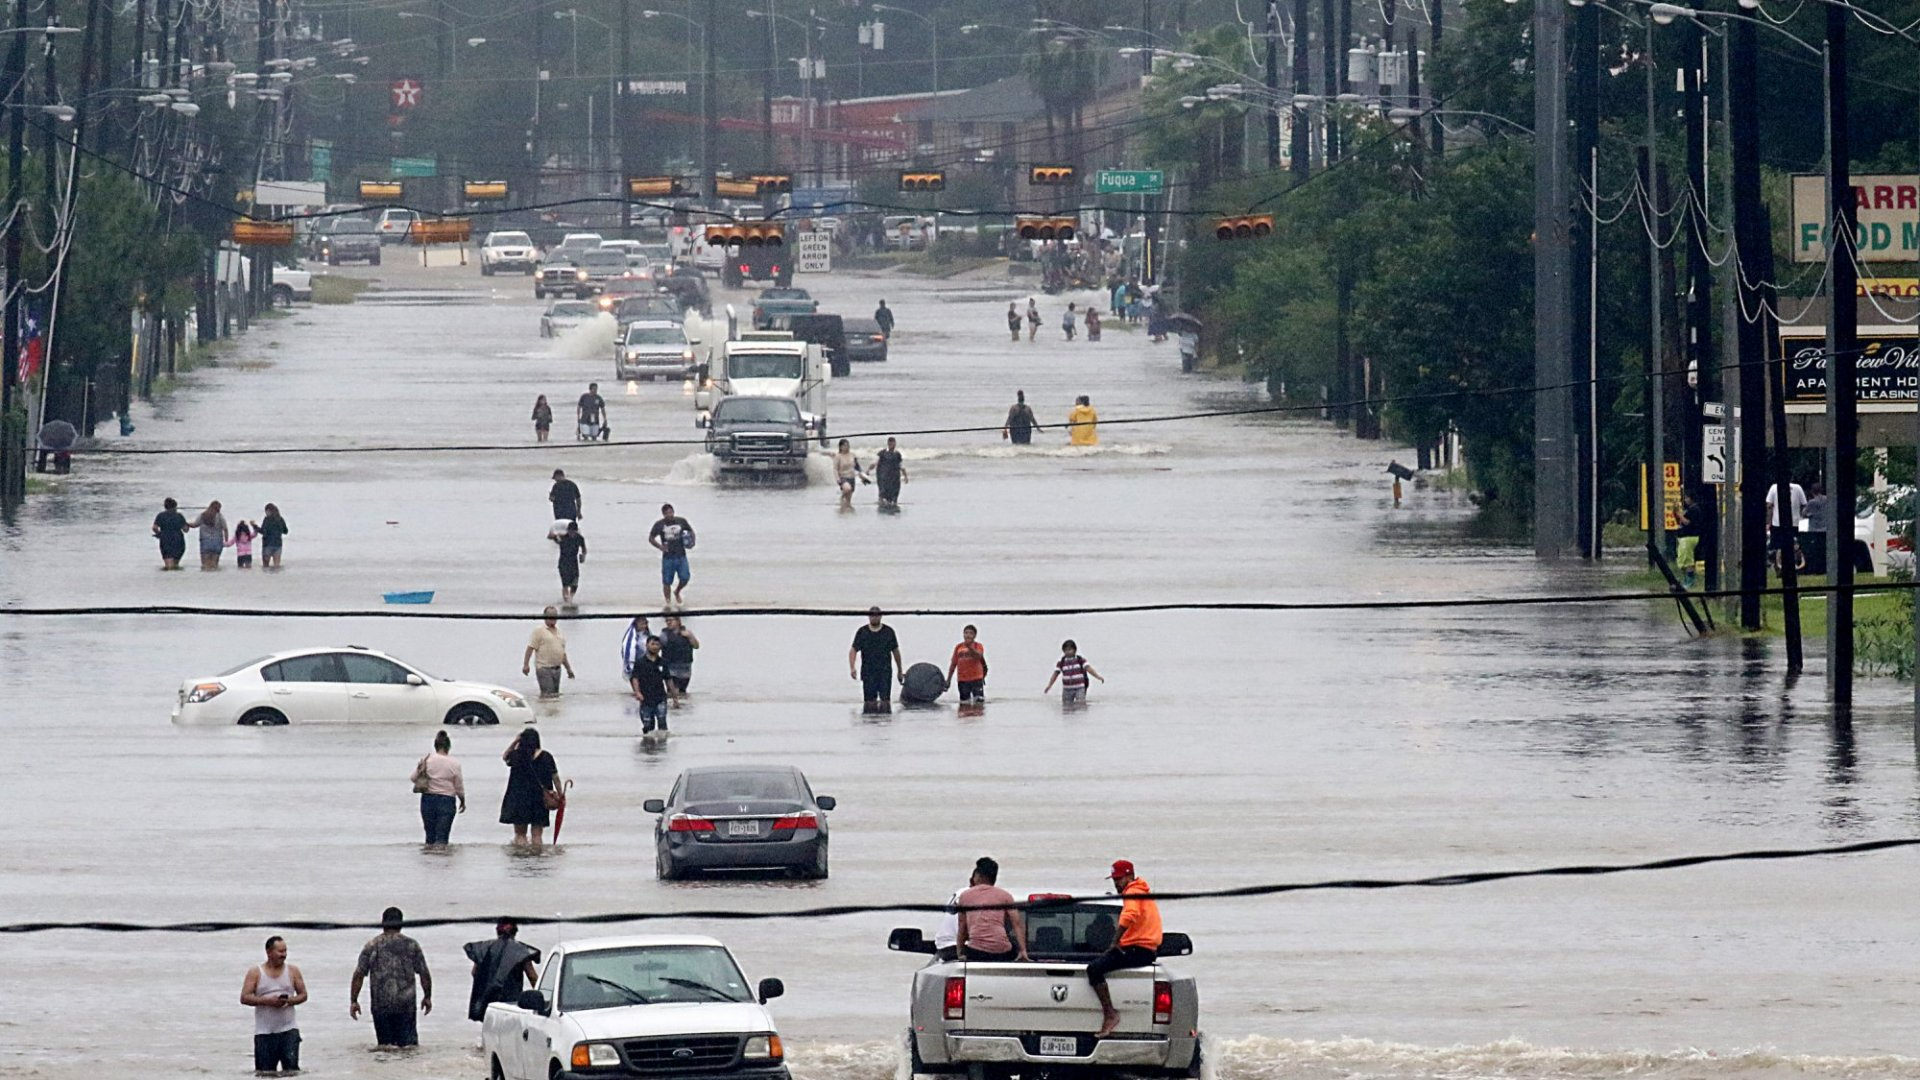 25 Companies Helping With Hurricane Harvey Relief That You Should Support